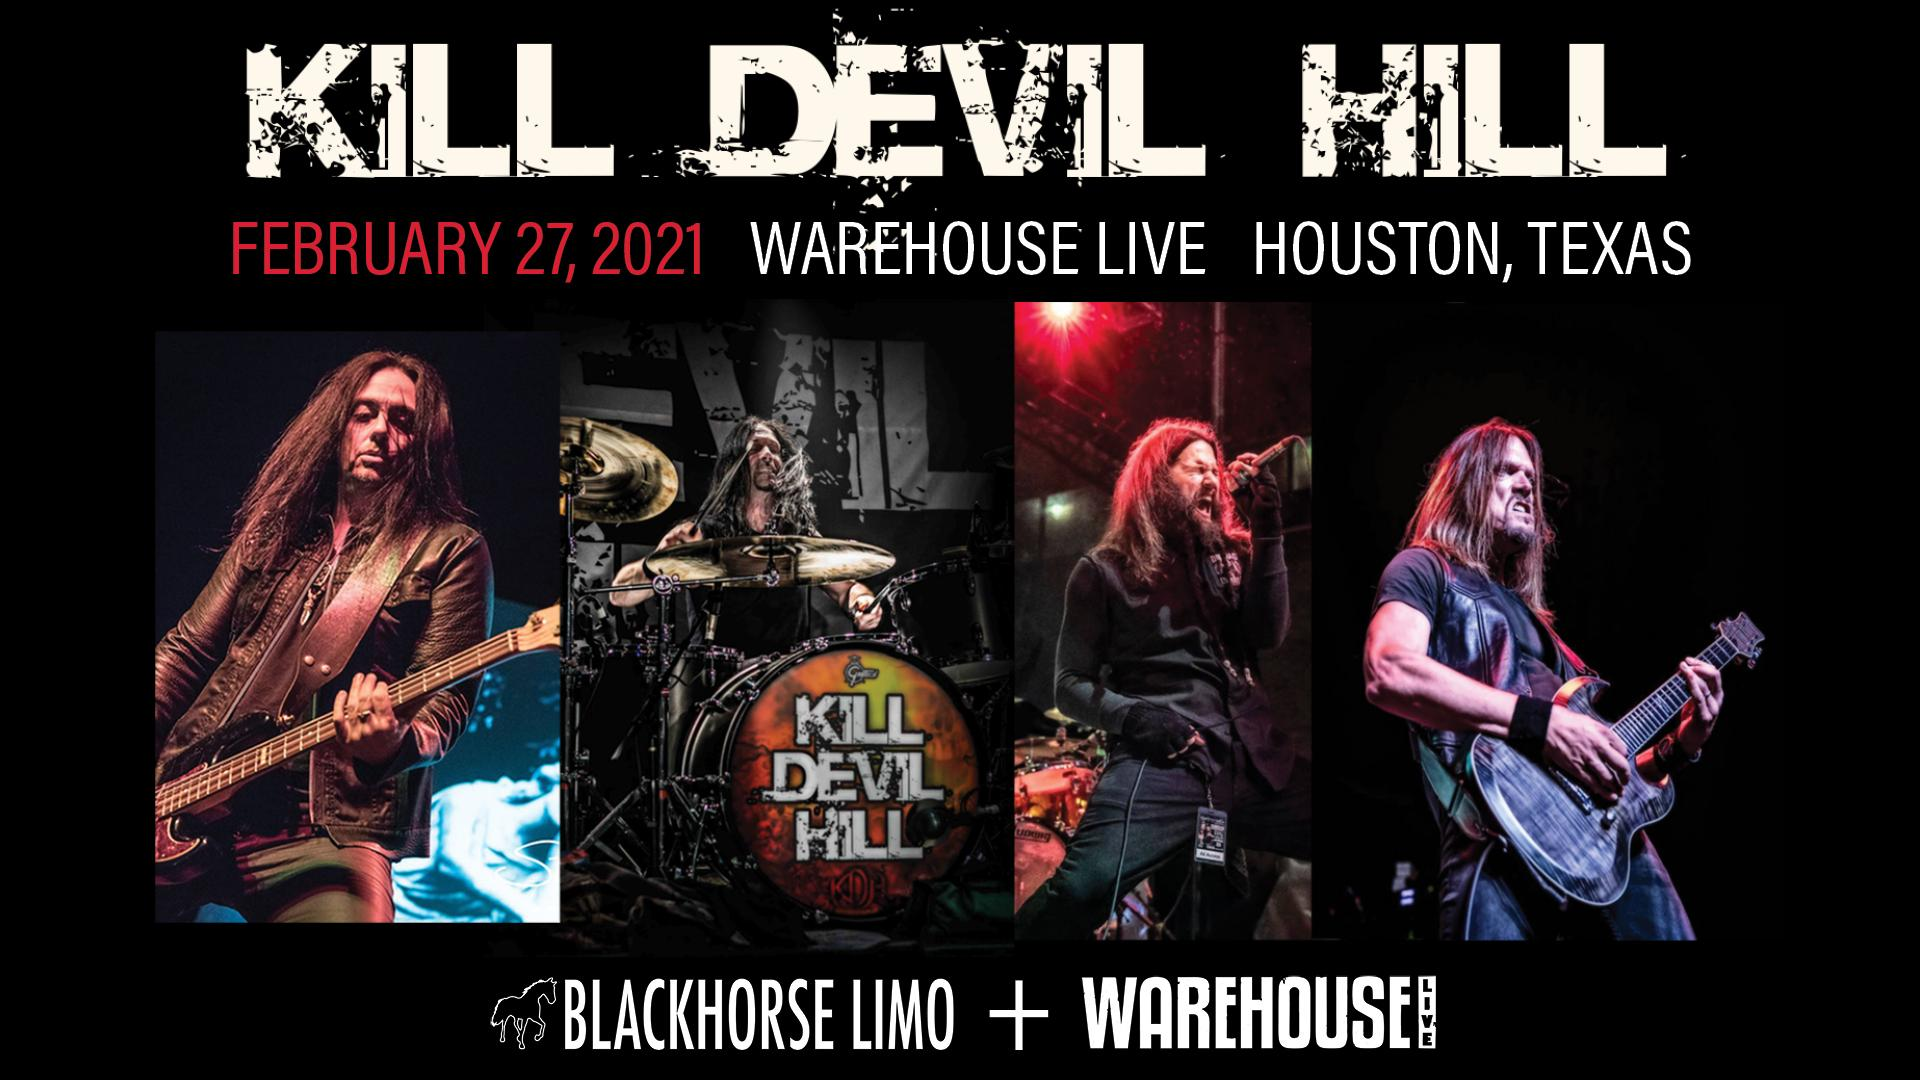 KILL DEVIL HILL, THE DIRTY RECKLESS, DEAD SET RED